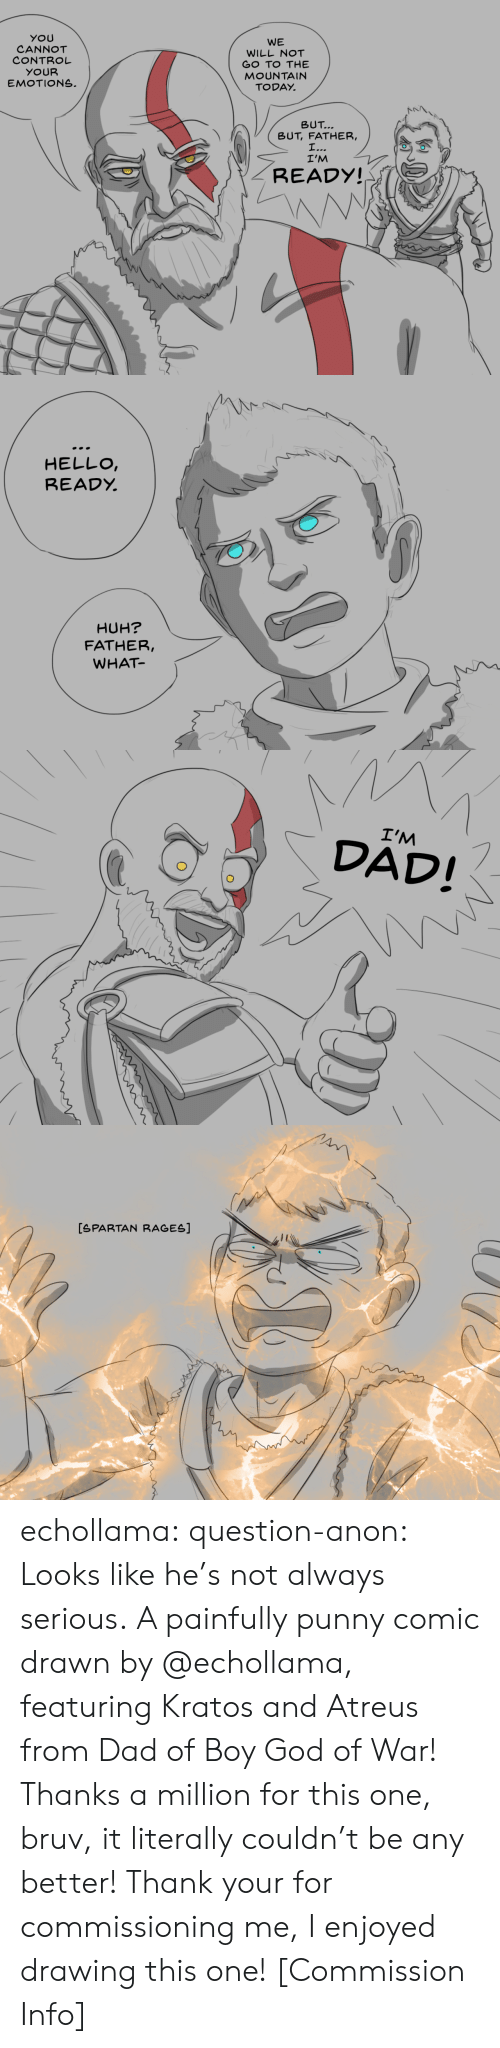 god of war: YOU  CANNOT  CONTROL  YOUR  EMOTIONS.  WE  WILL NOT  GO TO THE  MOUNTAIN  TODAY.  トN\  \  BUT  BUT, FATHER,  I'M  READY!   HELLO  READỵ  HUH?  FATHER,  WHAT   I'M  DAD!   [SPARTAN RAGES] echollama:  question-anon:  Looks like he's not always serious. A painfully punny comic drawn by @echollama, featuring Kratos and Atreus from Dad of Boy God of War! Thanks a million for this one, bruv, it literally couldn't be any better!  Thank your for commissioning me, I enjoyed drawing this one!    [Commission Info]